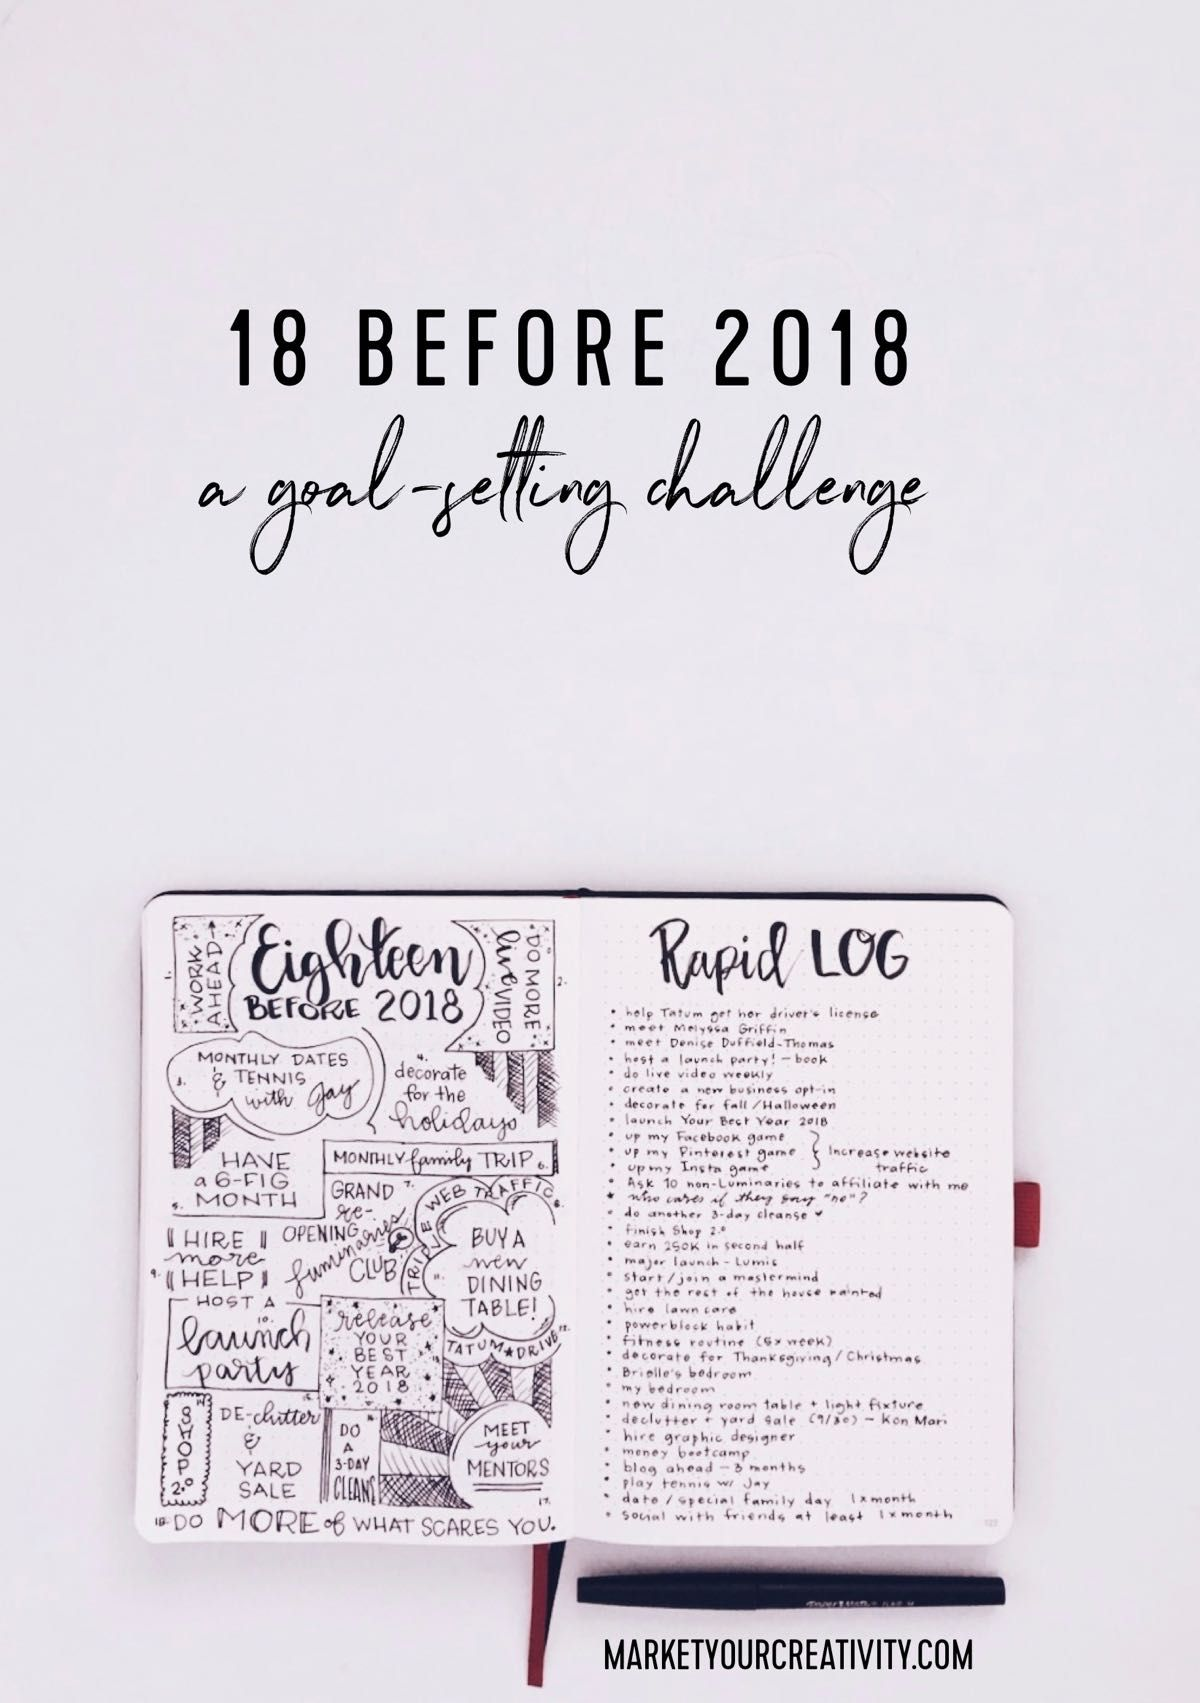 18 before 2018 A goal-setting challenge  sc 1 st  Pinterest : goal setting table - pezcame.com